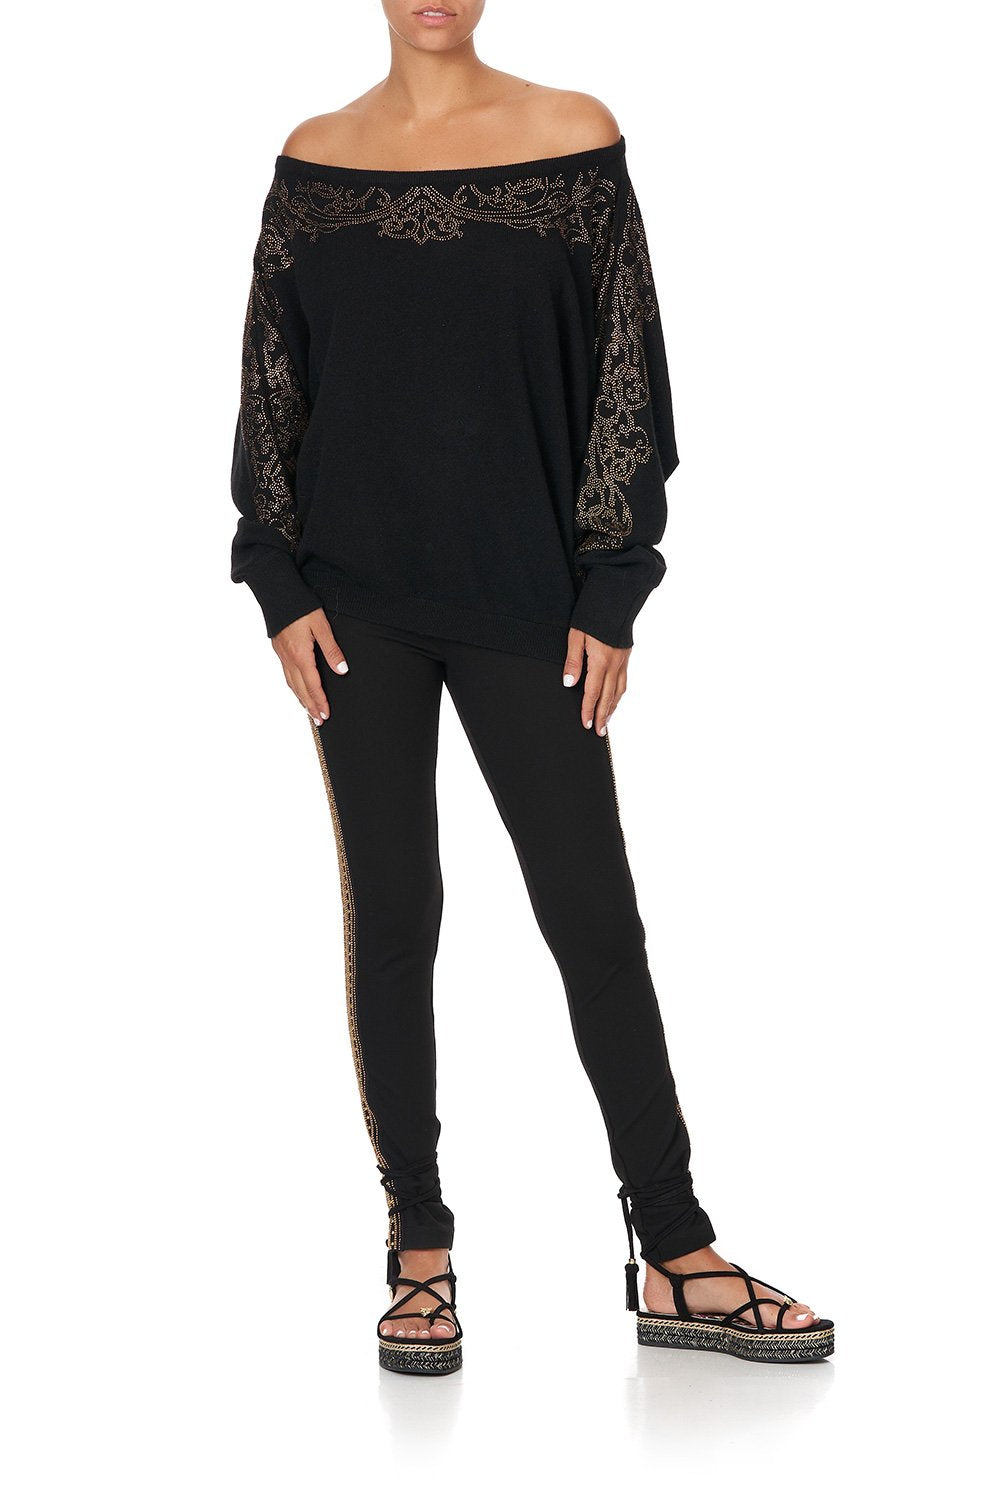 OFF THE SHOULDER DOLMAN KNIT JUMPER STUDIO 54